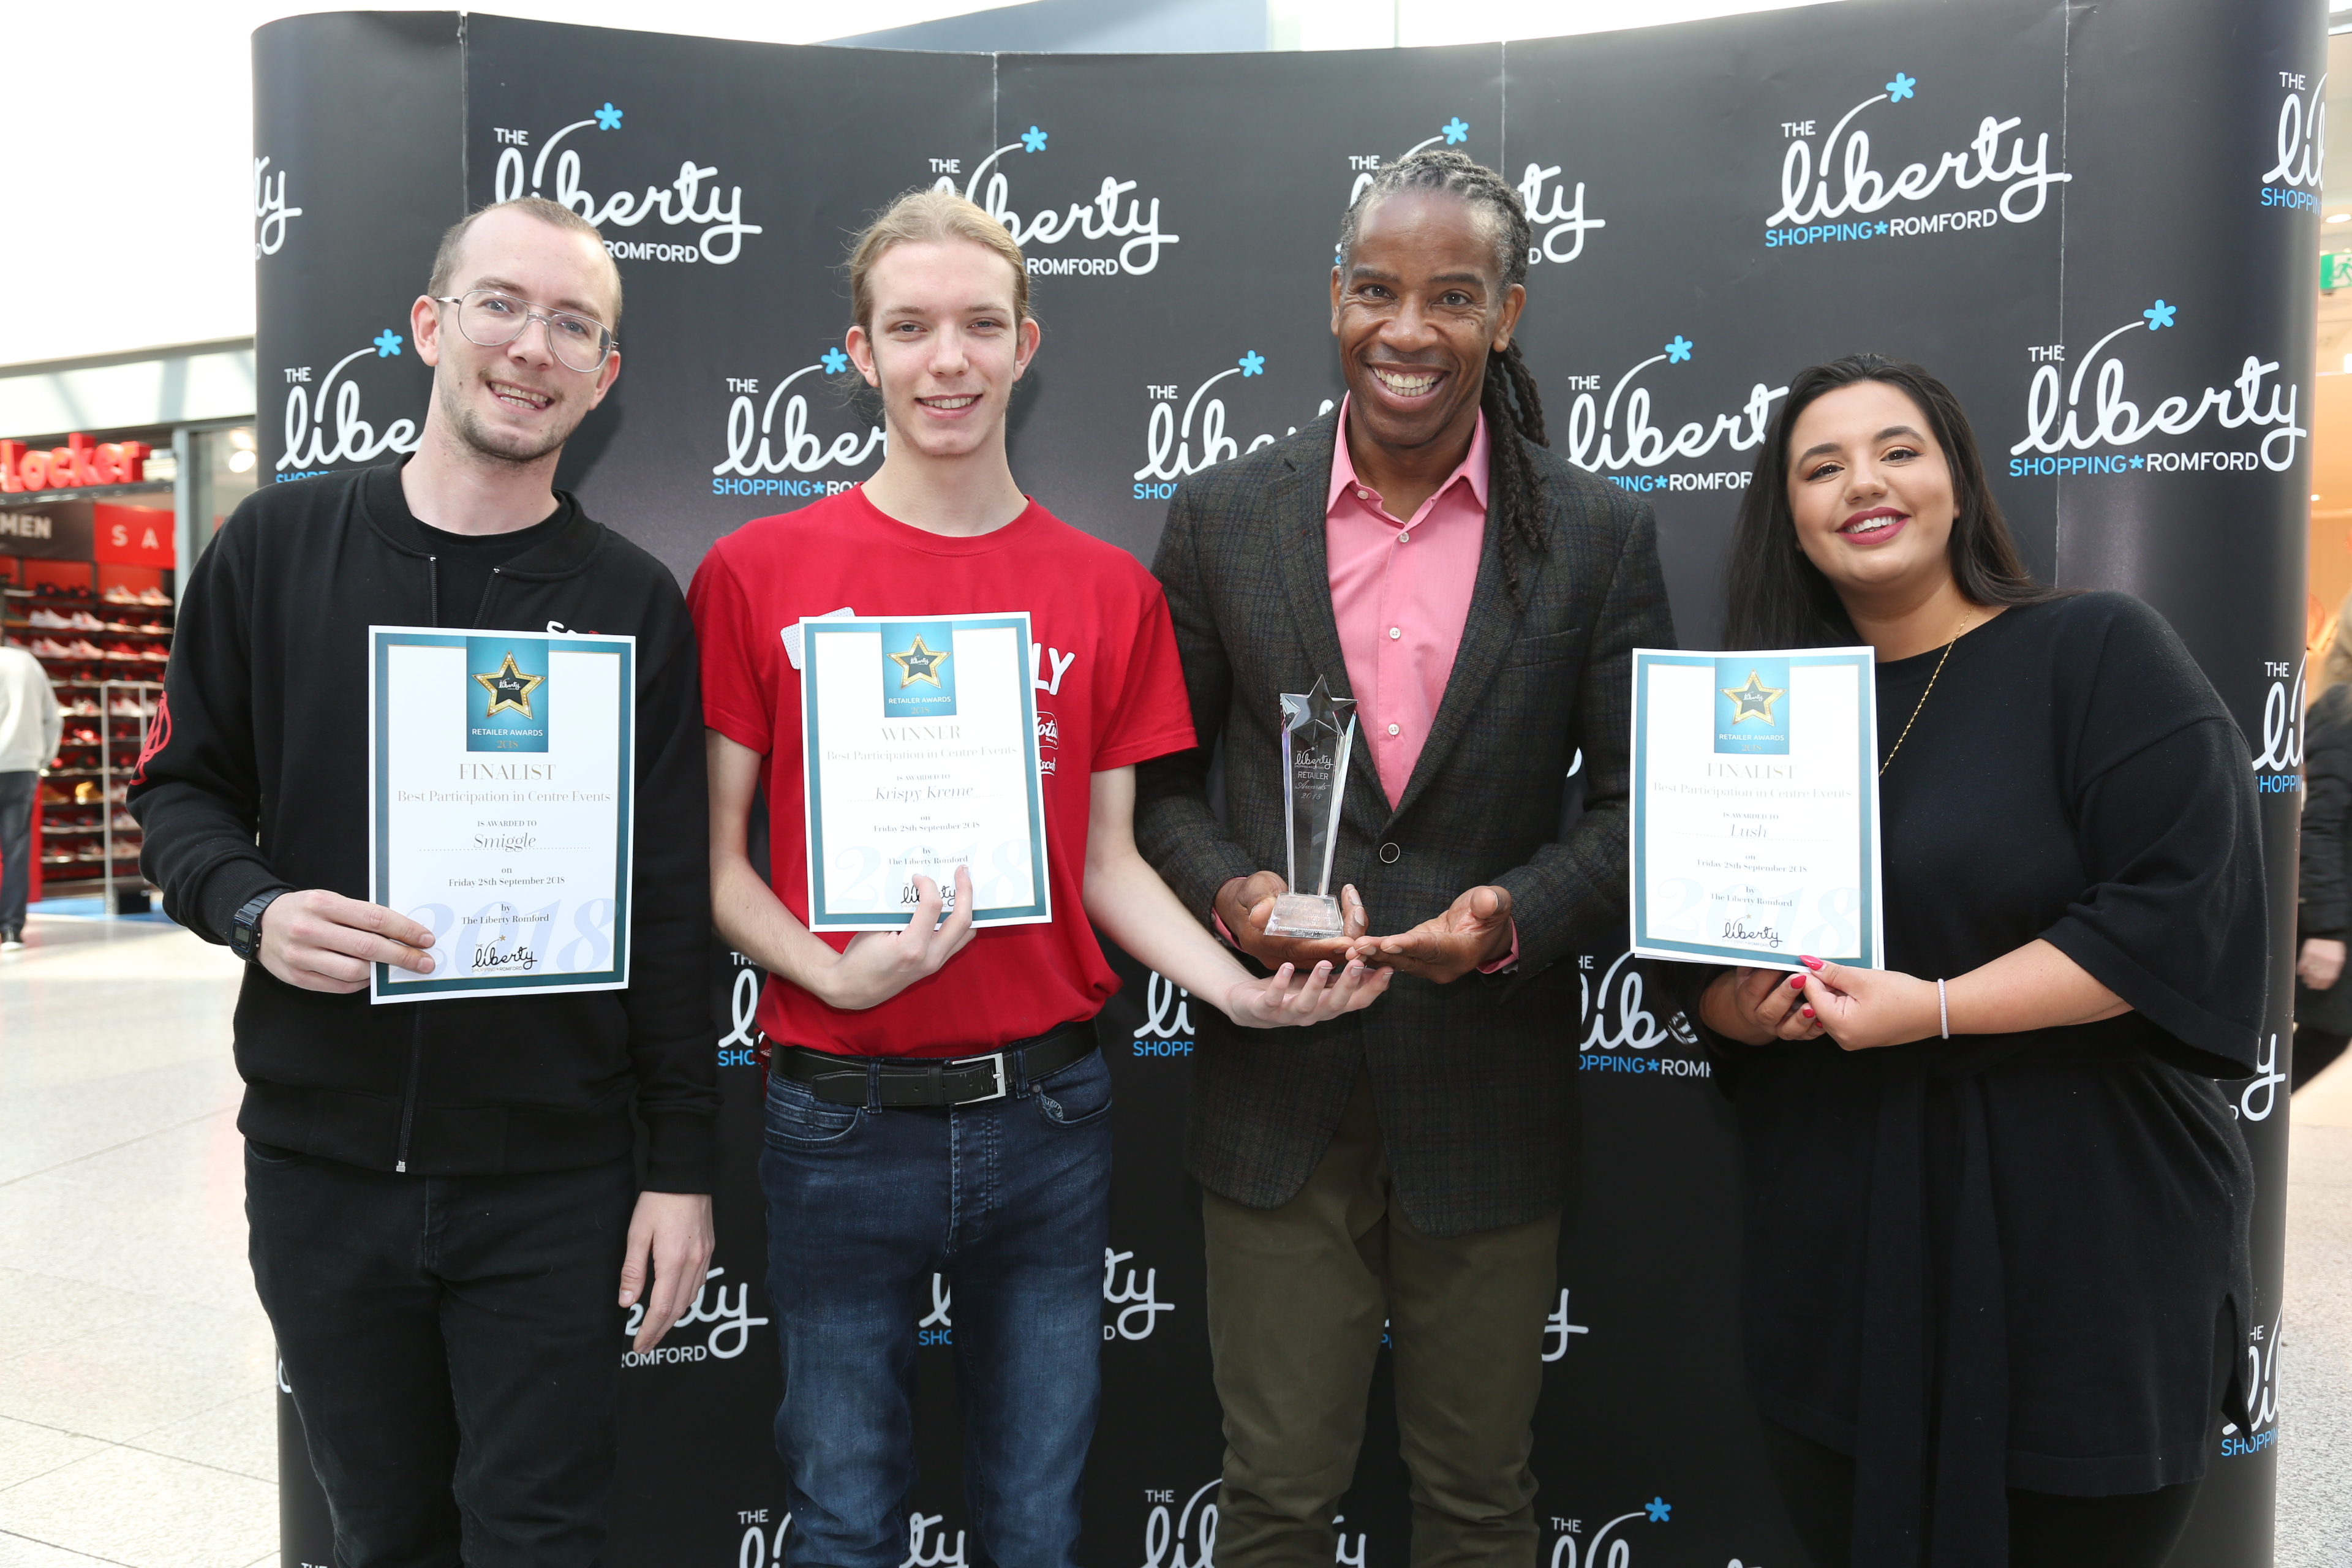 Image: S.Rowse. Best Participation in Centre Events, Finalist Mark Brown from Smiggle,  Winner Taylor Harris with creator of Gladiator Fitness Training Weininger Irwin, finalist Sofia Kasapi from Lush